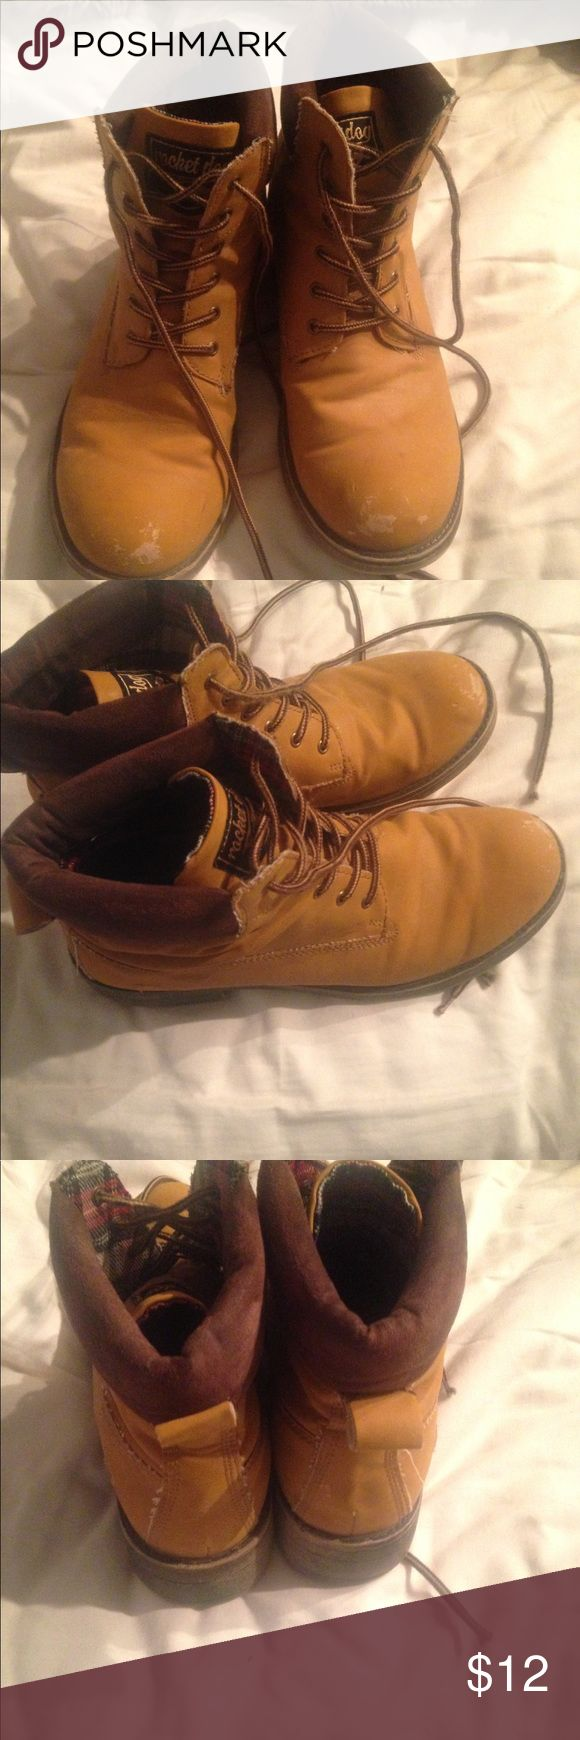 Rocketdog Combat/Work boots Good condition, slight scuffing on the toe. Used as work boots and cute combat boots to wear with jeans. Similar look to Timberlands. Durable faux leather exterior and cotton fabric interior. Inside is red and green plaid. Laces are new. Super comfortable and great for an edgy look. Size 9, but fits small like 8-8.5. Priced for fast sale. Need the closet space! Rocket Dog Shoes Lace Up Boots